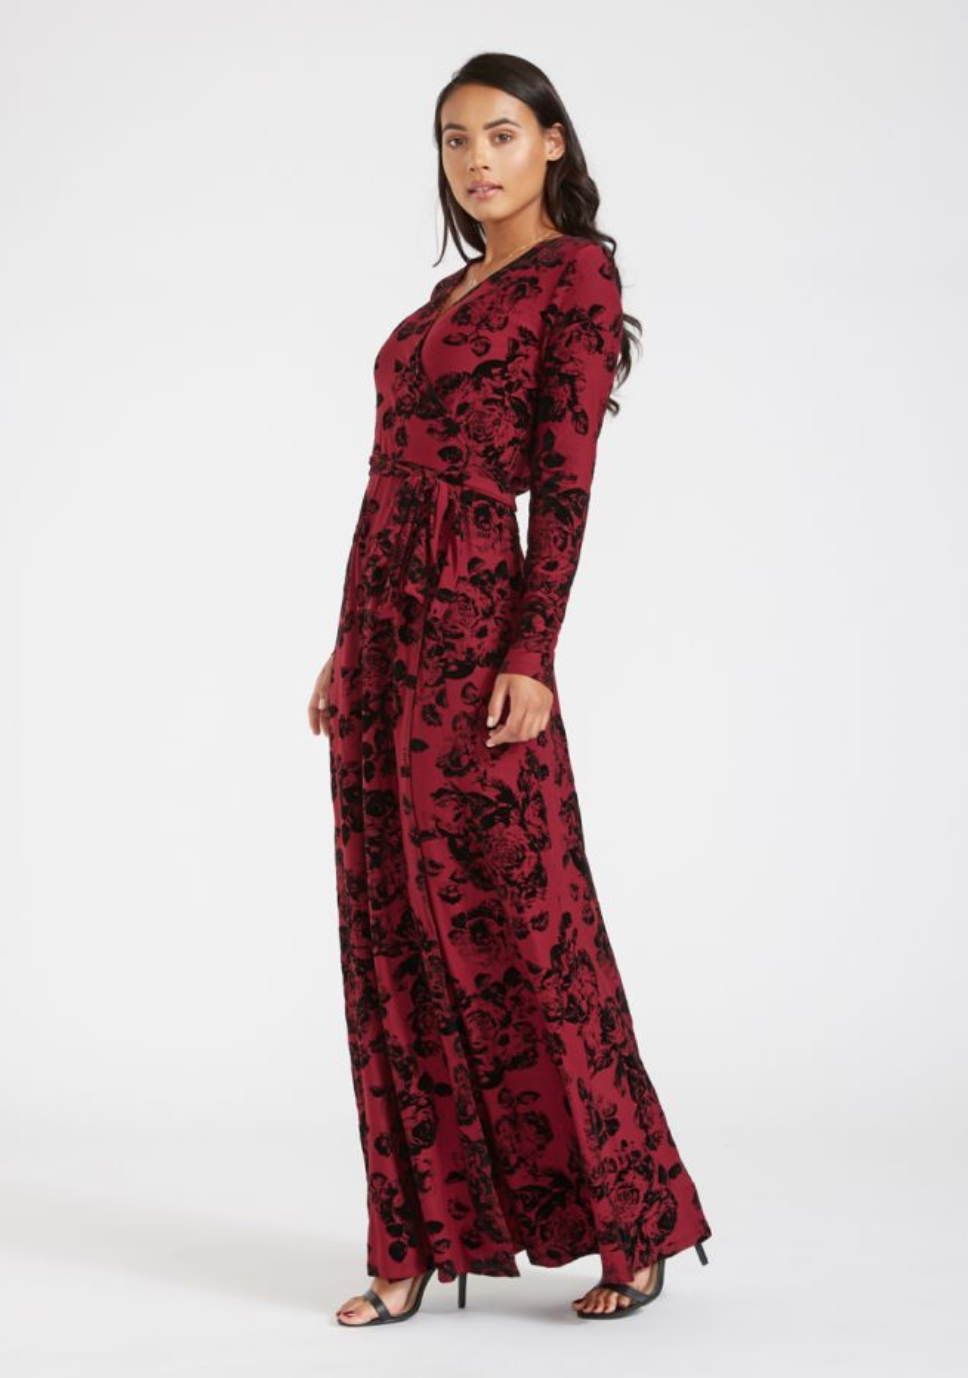 82e02a59 The new fierce, flattering, and seductive wrap dress. Designed for tall  women, with long sleeves, super soft fabric, and extended length.